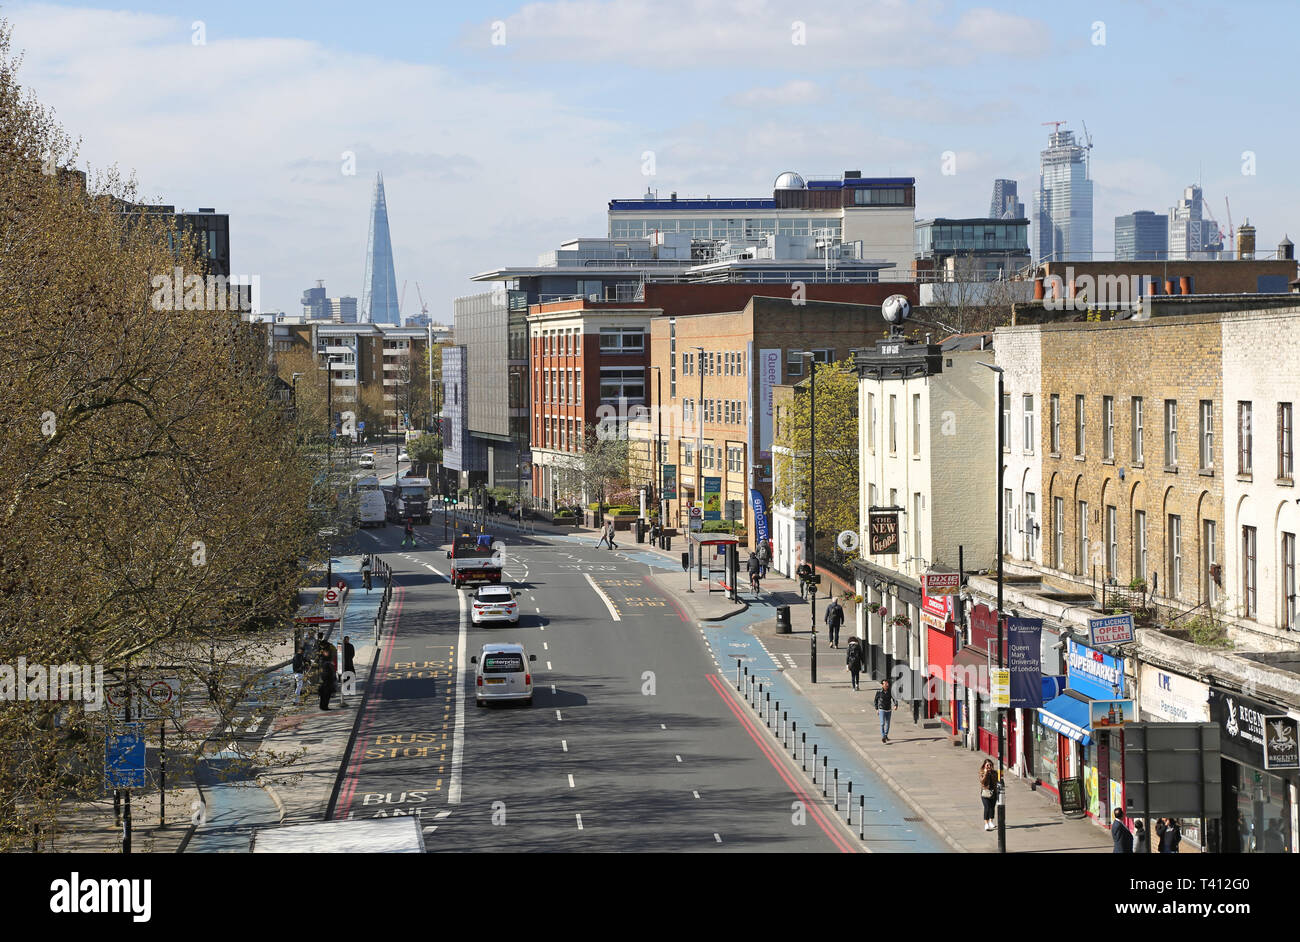 High Level view of Mile End Road / Bow Road in London's East End. View west towards the City of London. Shows cycle routes. The Shard in background. - Stock Image